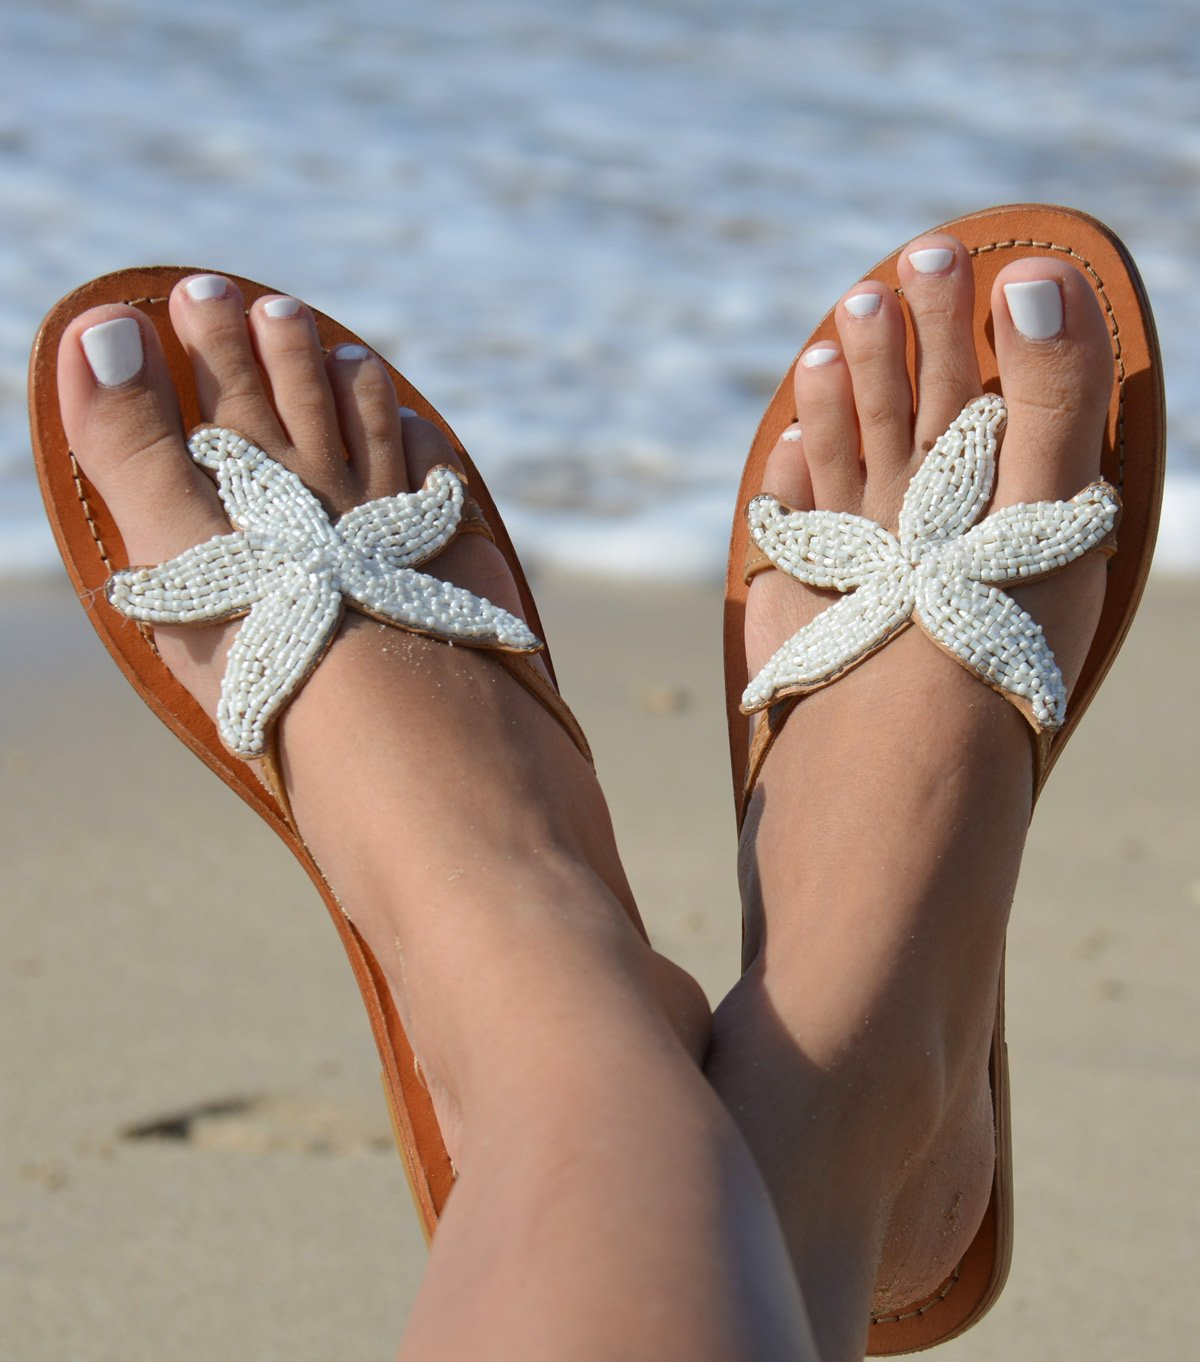 f954242c1cd7 Amazon.com  Beach Wedding Beaded sandals Women s Handmade wedding flip flops